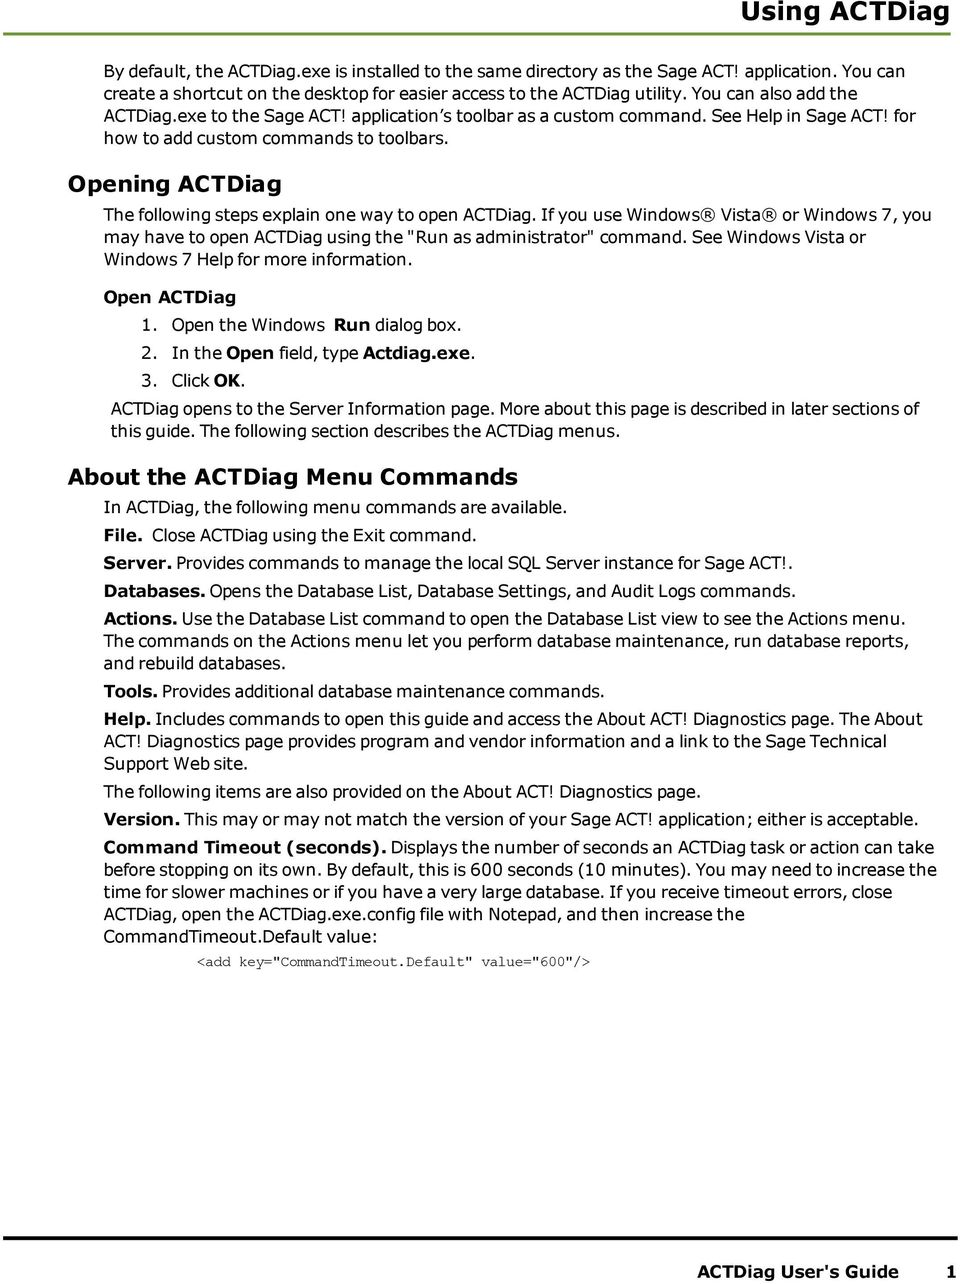 "Opening ACTDiag The following steps explain one way to open ACTDiag. If you use Windows Vista or Windows 7, you may have to open ACTDiag using the ""Run as administrator"" command."